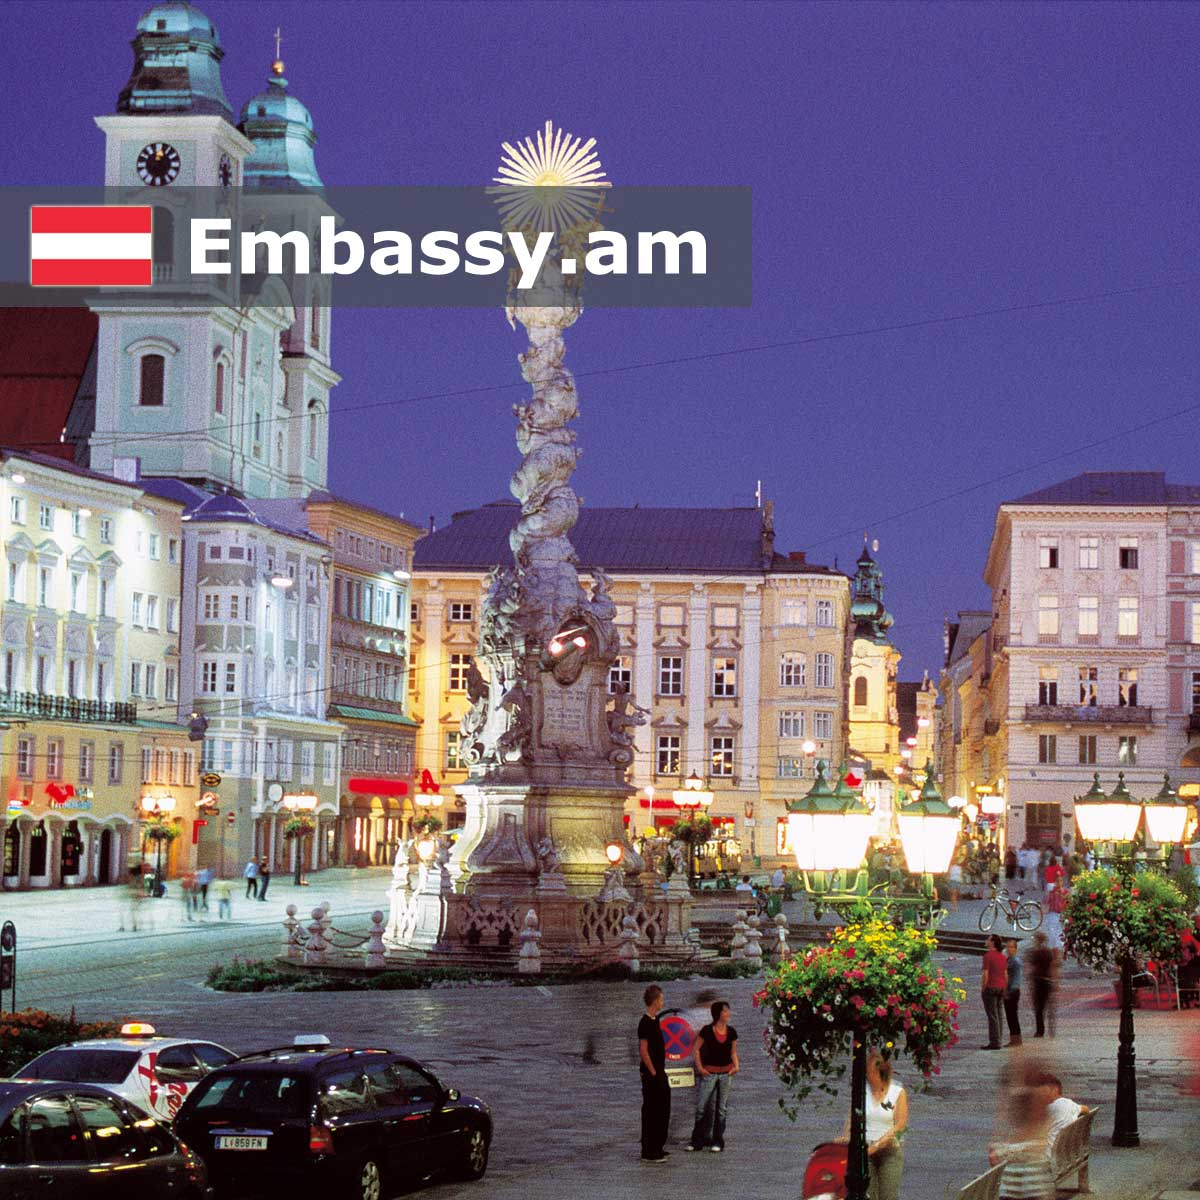 Linz - Hotels in Austria - Embassy.am